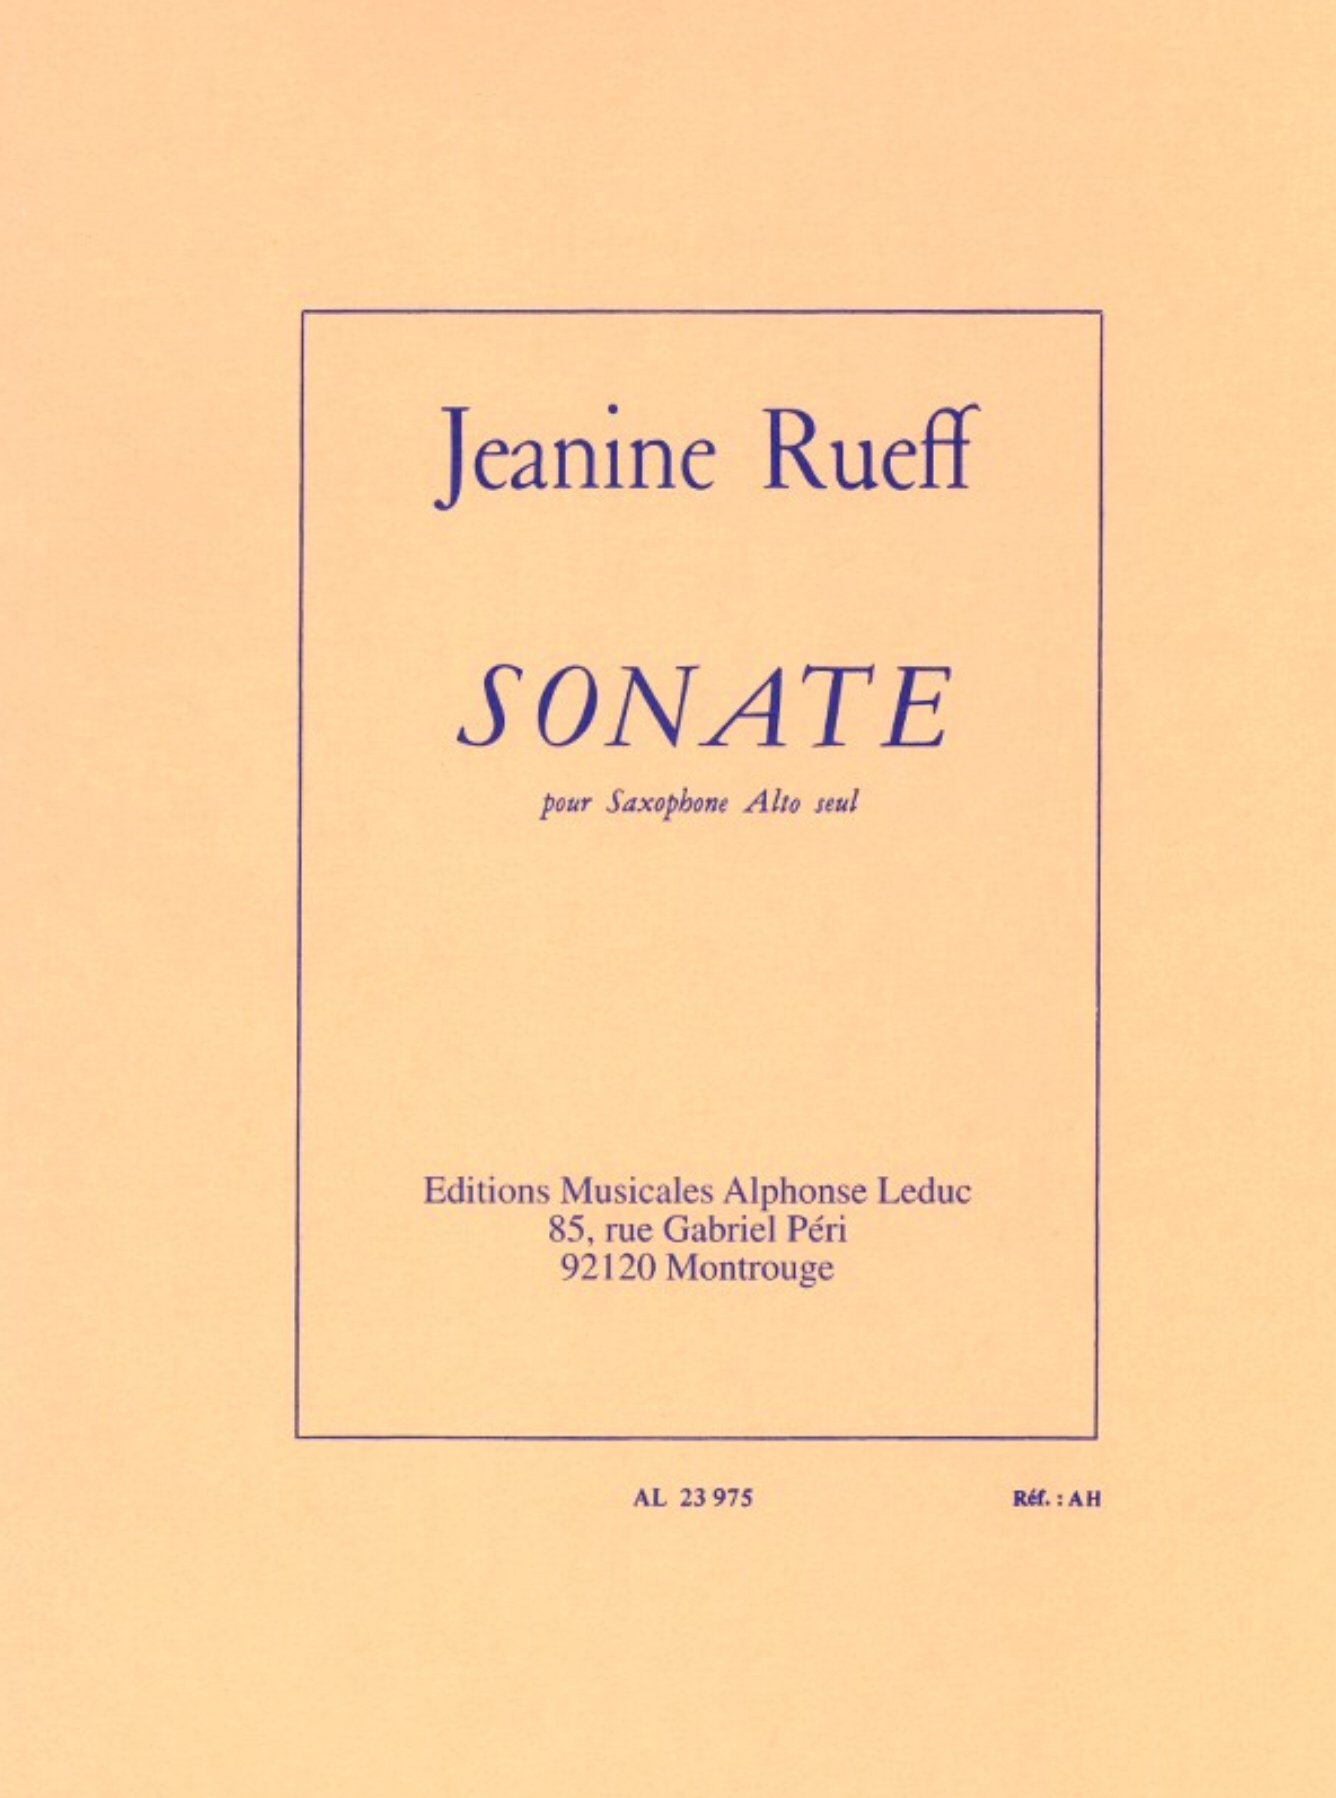 Sonate  by Jeanine Rueff